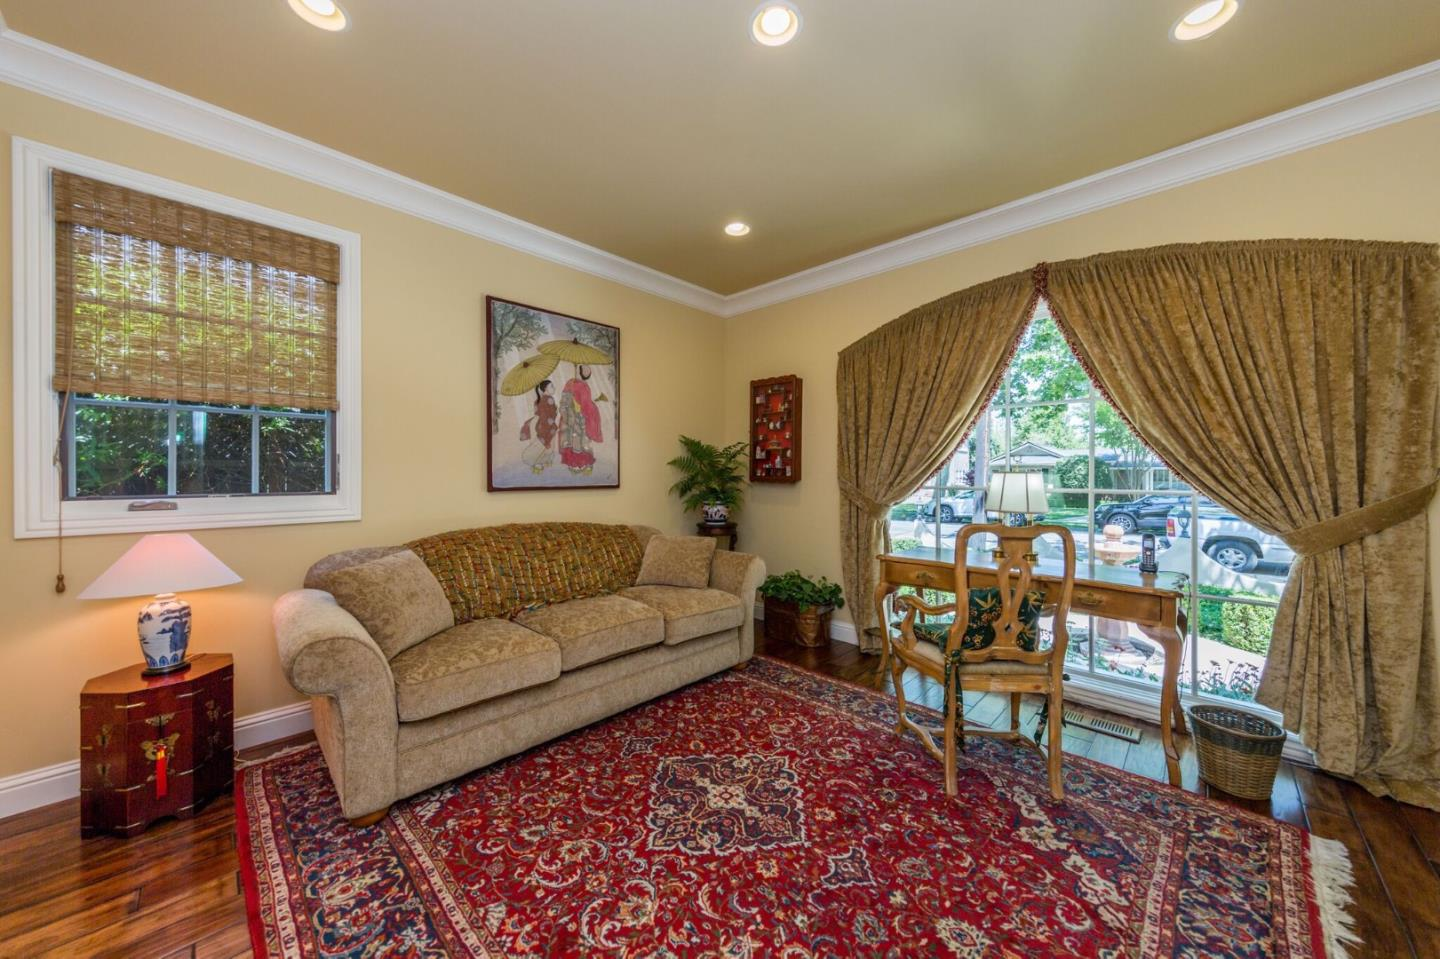 Additional photo for property listing at 1225 Cherry Avenue  San Jose, California 95125 United States